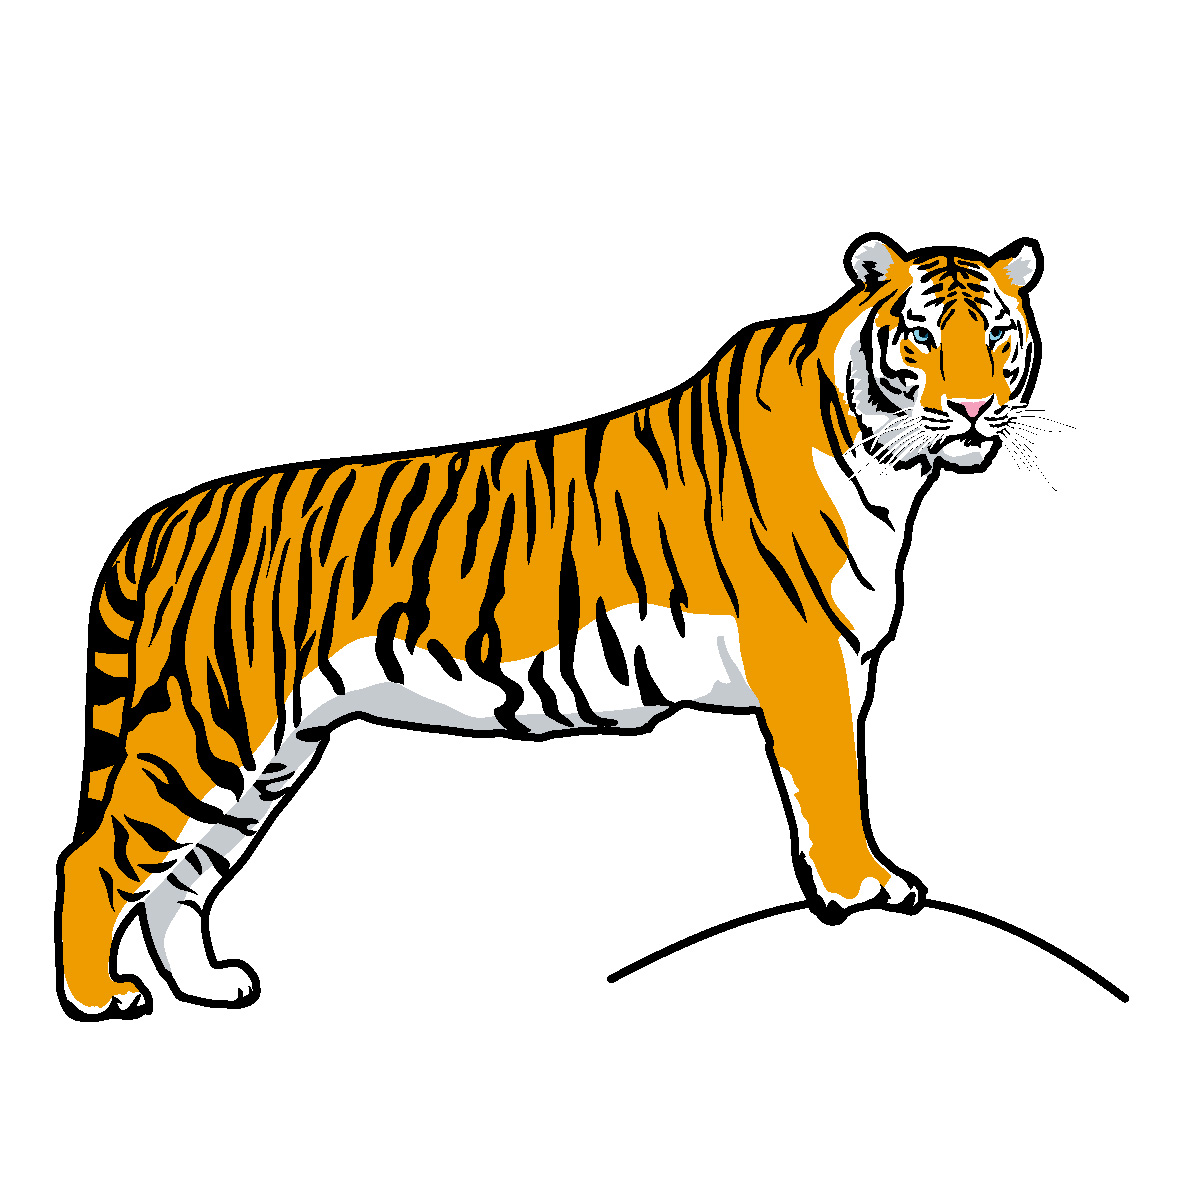 Tiger Clipart Black And White   Clipart Panda   Free Clipart Images